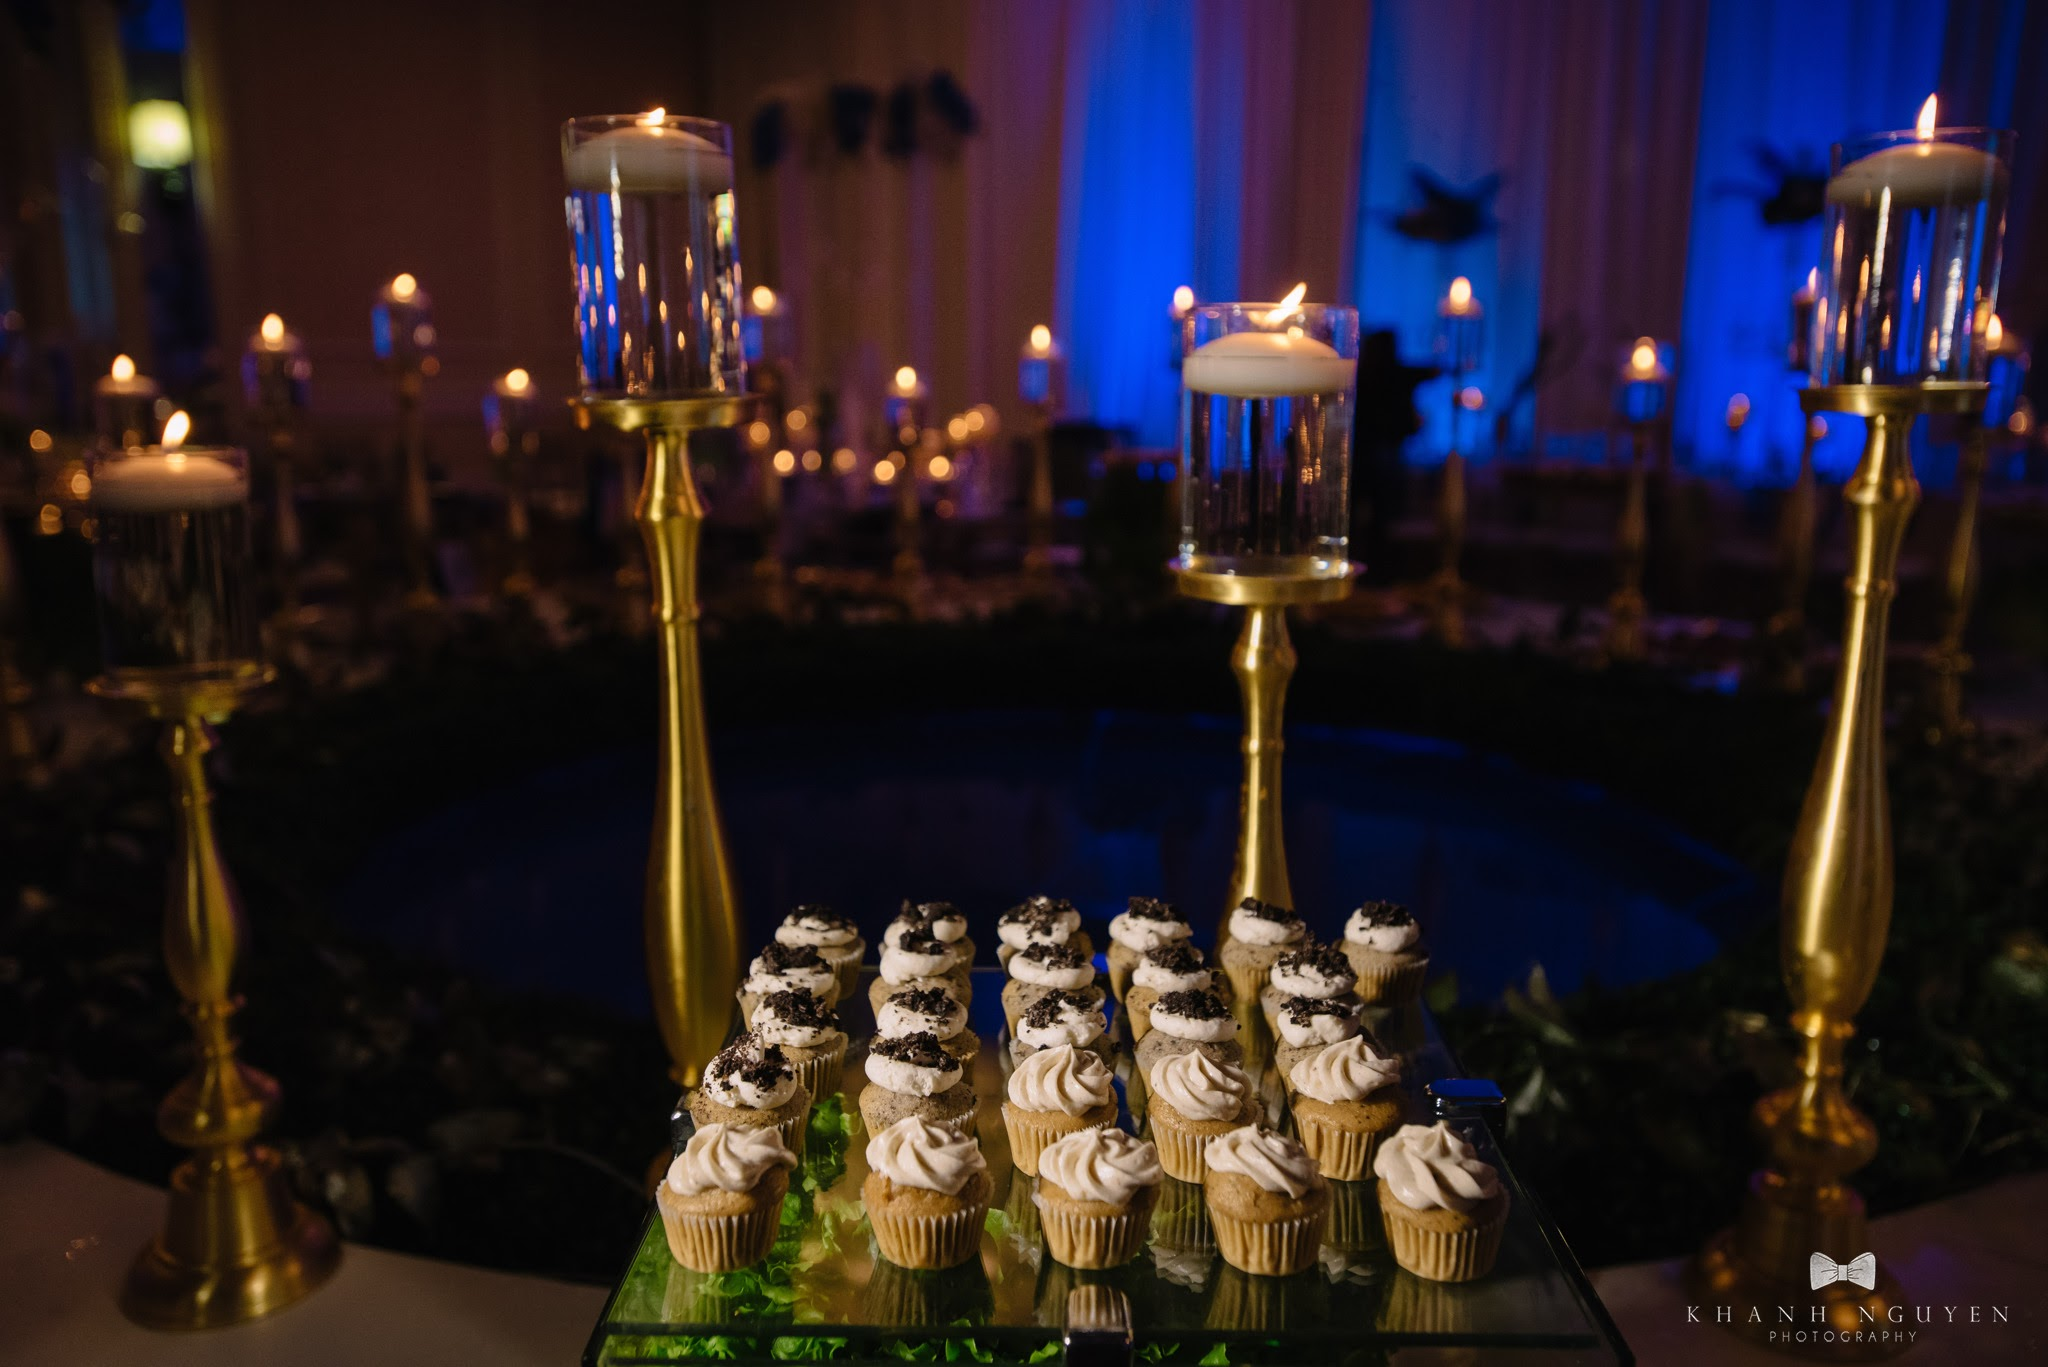 Deepa and Bj- Decoration-khanhnguyenphotography.com-056.JPG